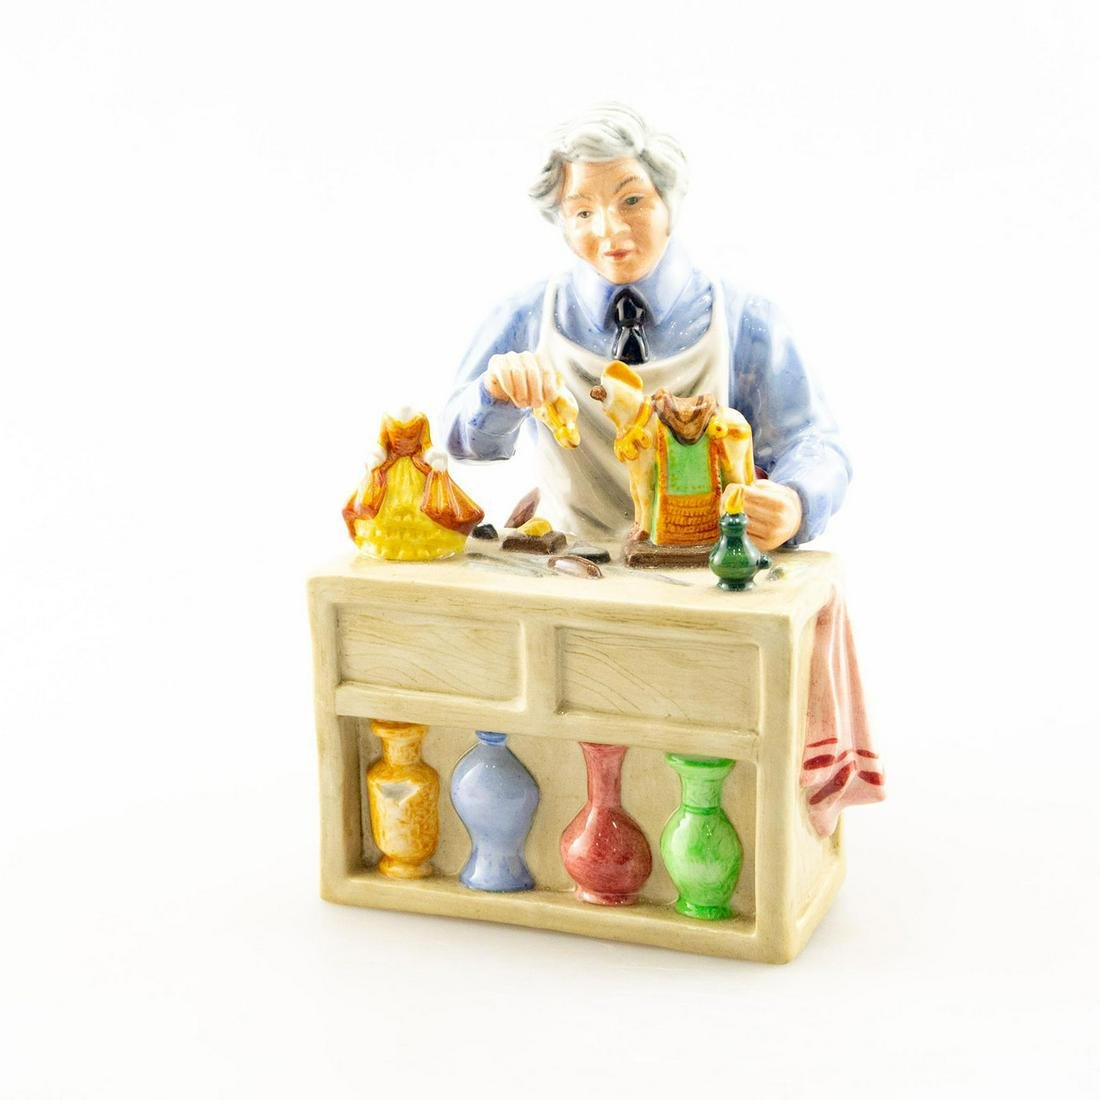 THE CHINA REPAIRER HN2943 - ROYAL DOULTON FIGURINE